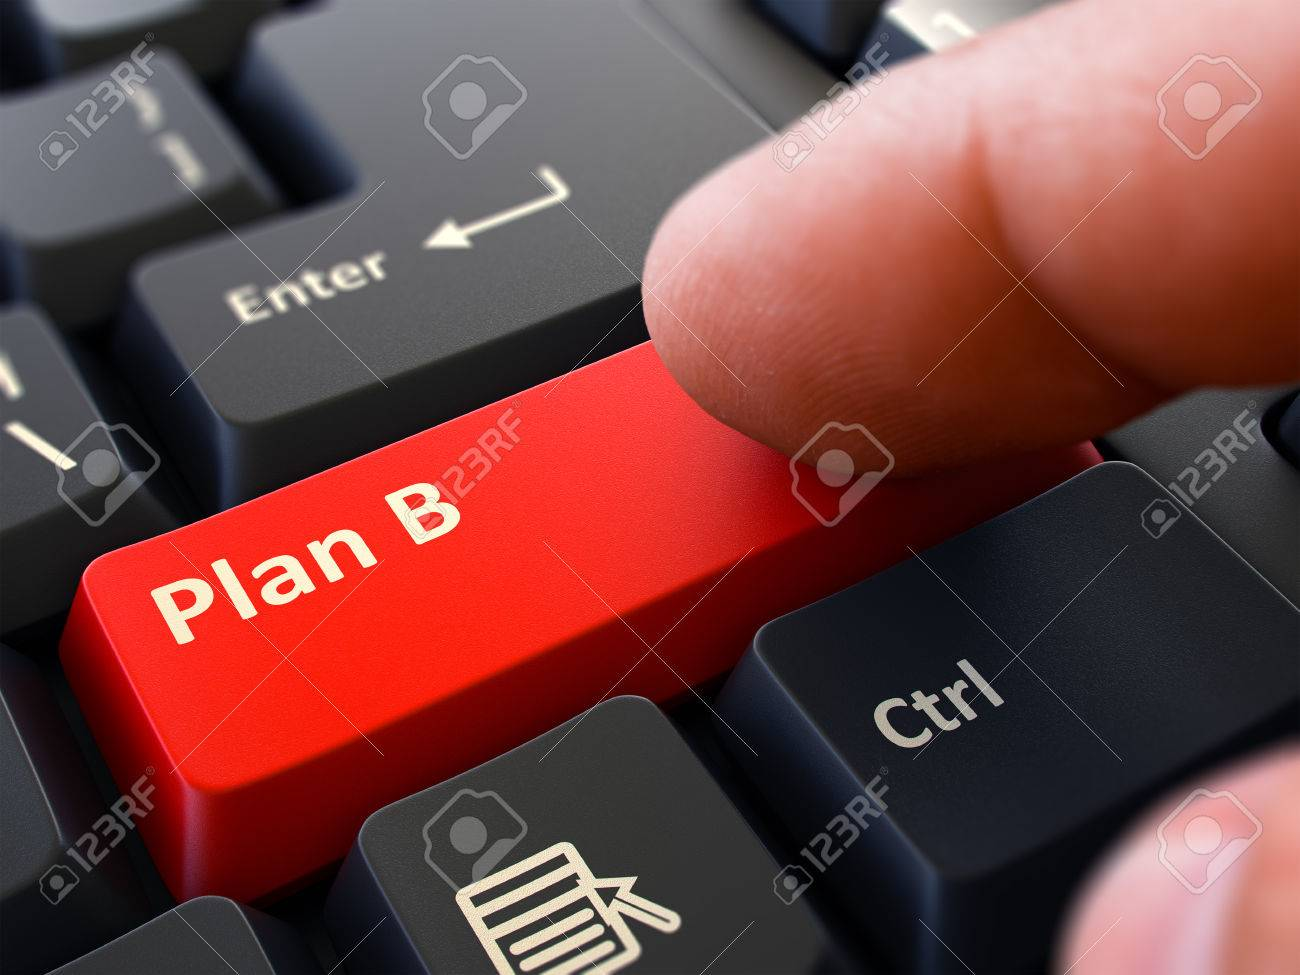 55460335-plan-b-written-on-red-keyboard-